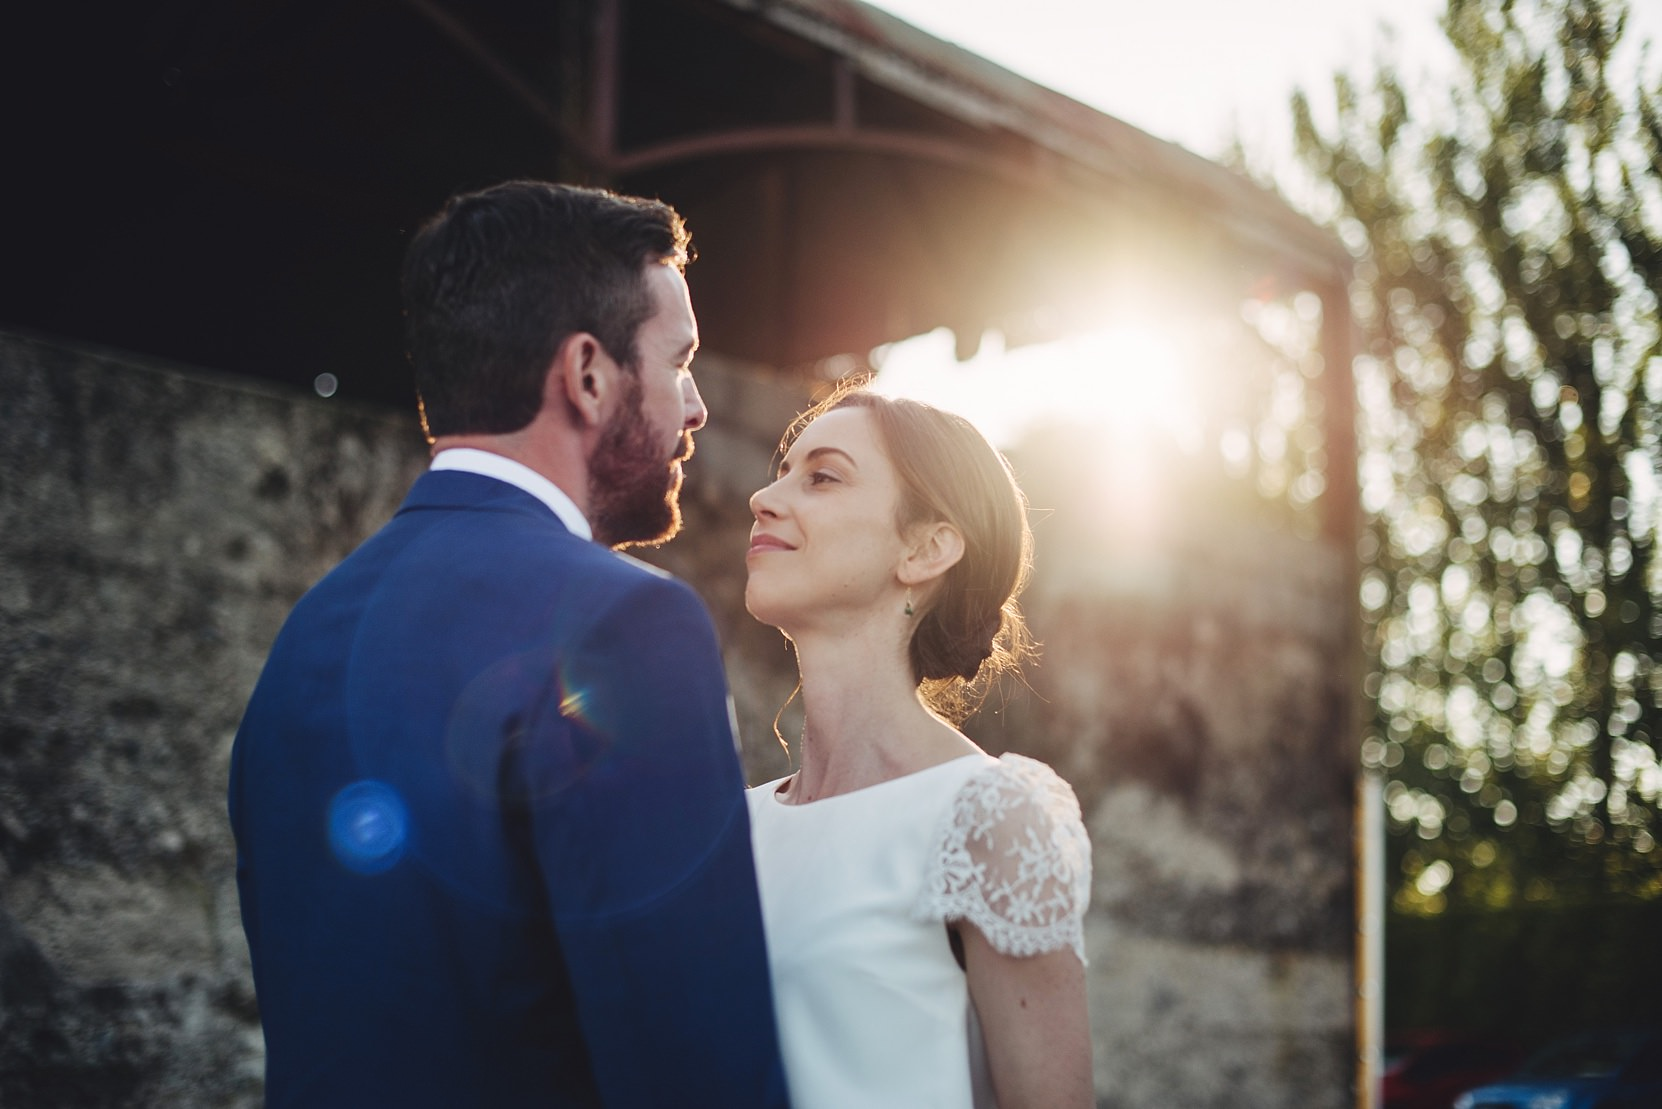 Bride and groom standing at a wall in beautiful light at a wedding